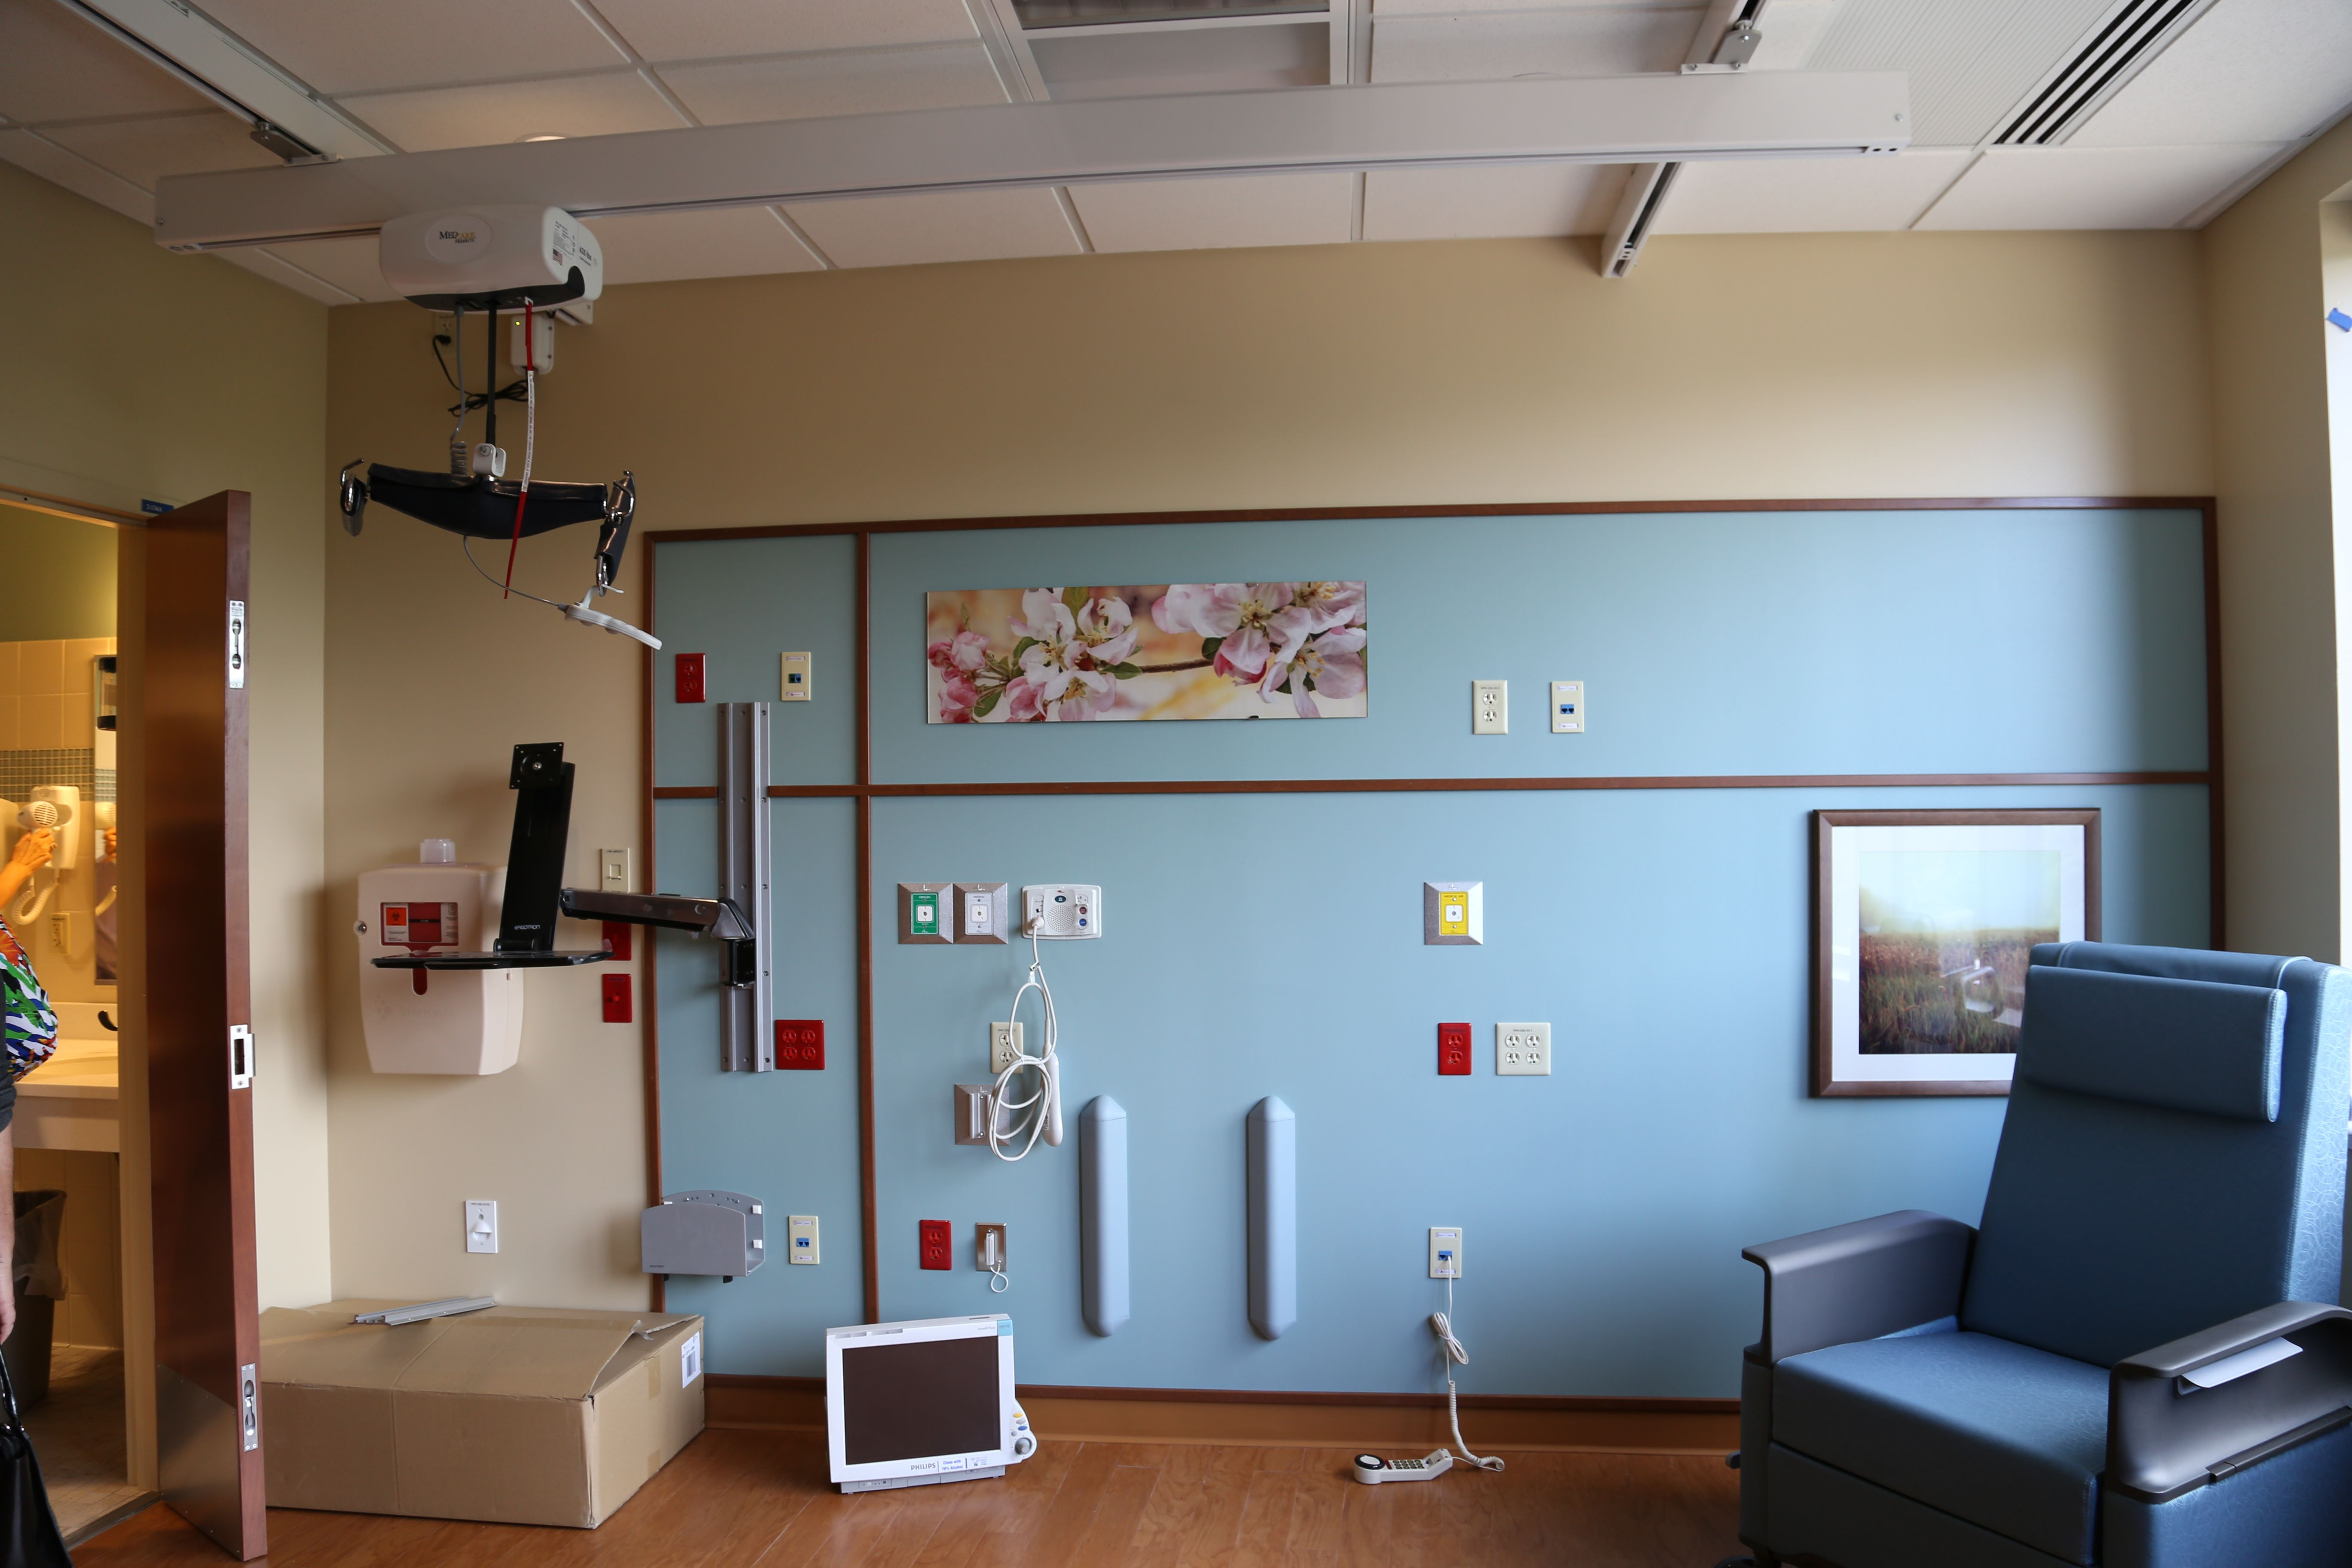 Patient Room Headwall with inwall gases. MedCare Ceiling